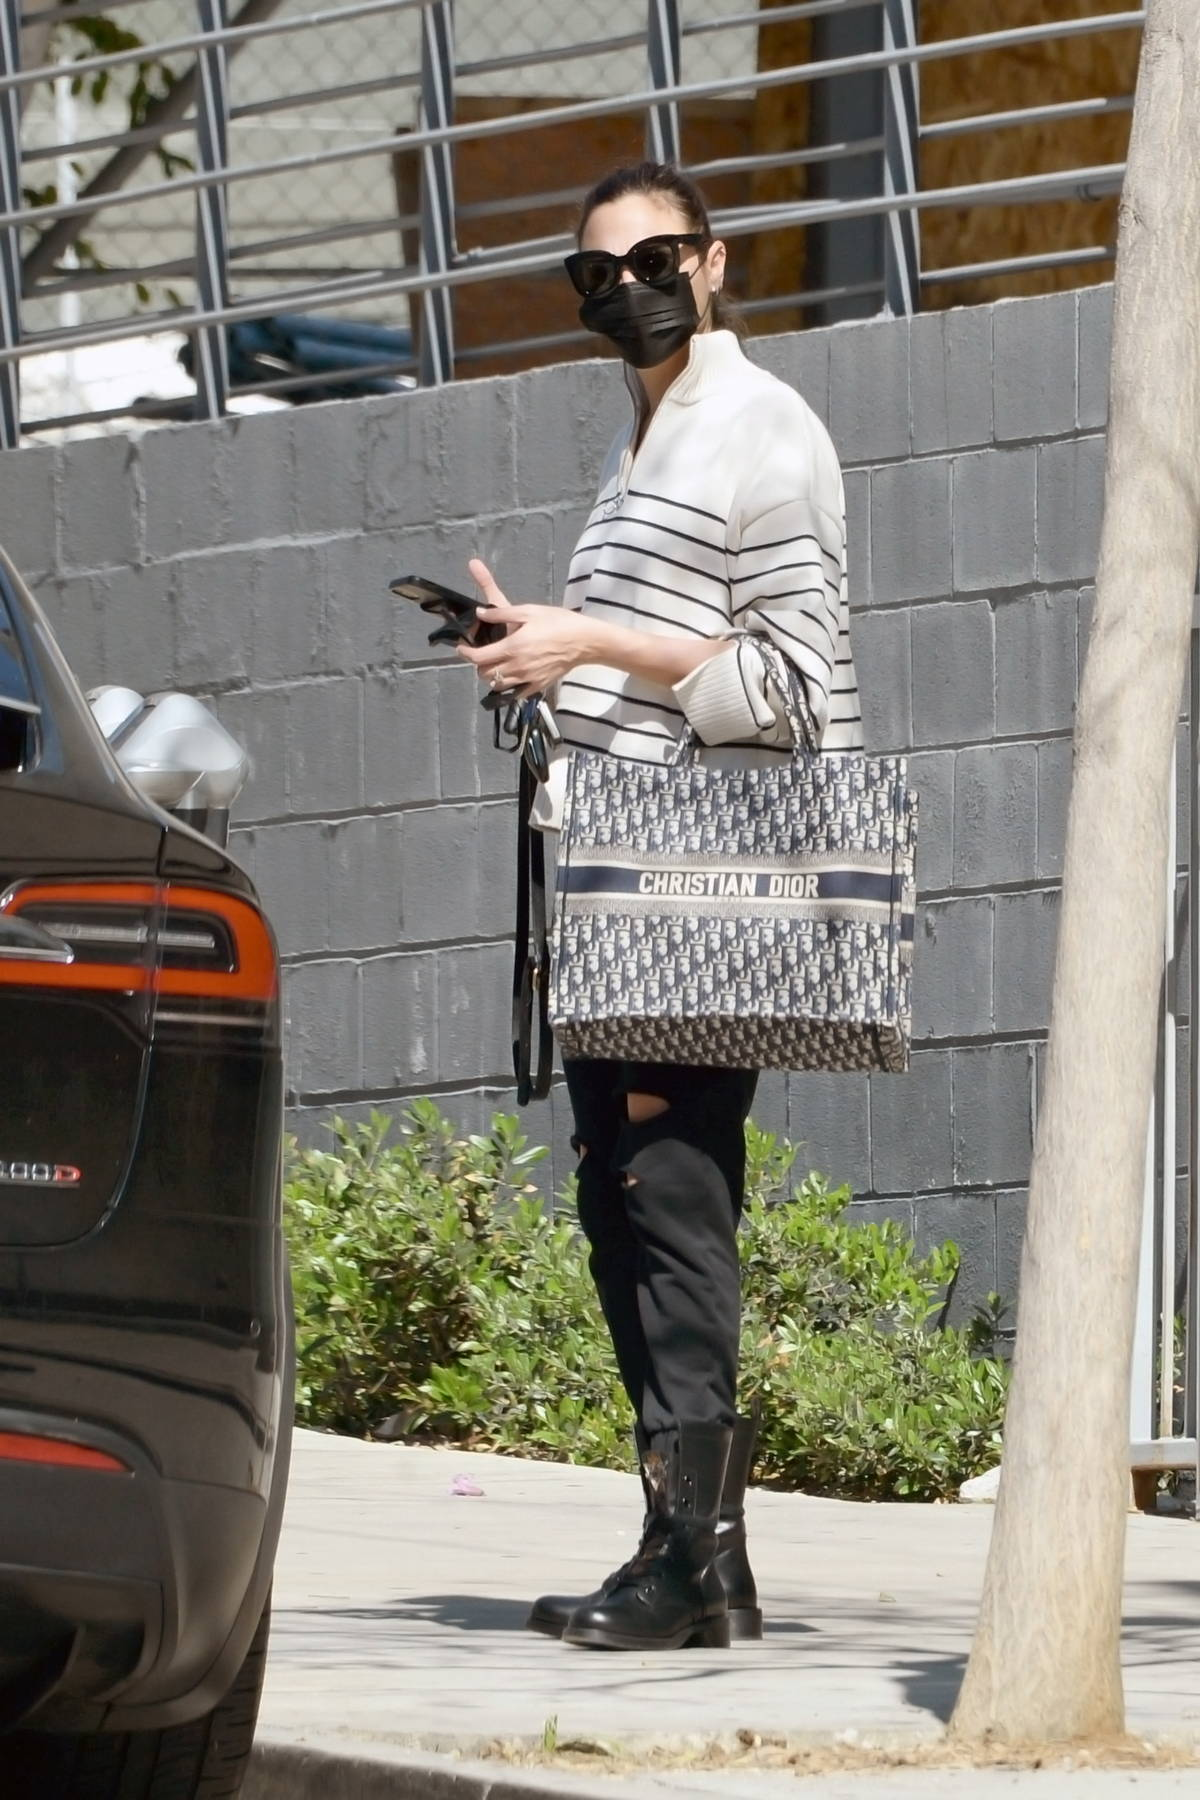 Gal Gadot seen for the first time since announcing her pregnancy as she visits a hair salon in Los Angeles